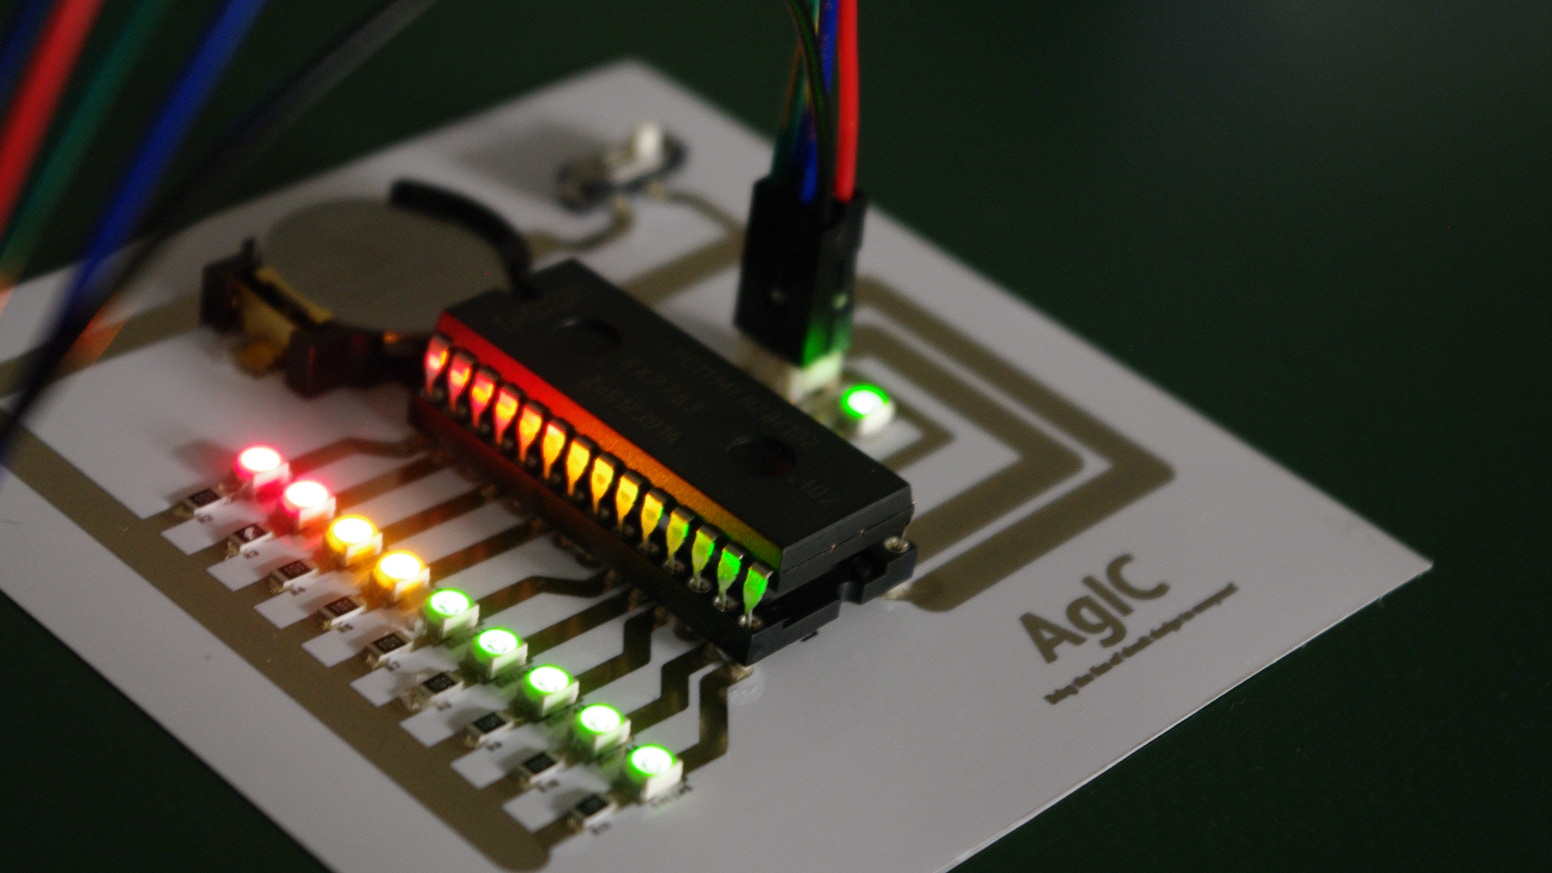 Agic Print Printing Circuit Boards With Home Printers By Inc Make This Simplest Continuity Tester Electronic